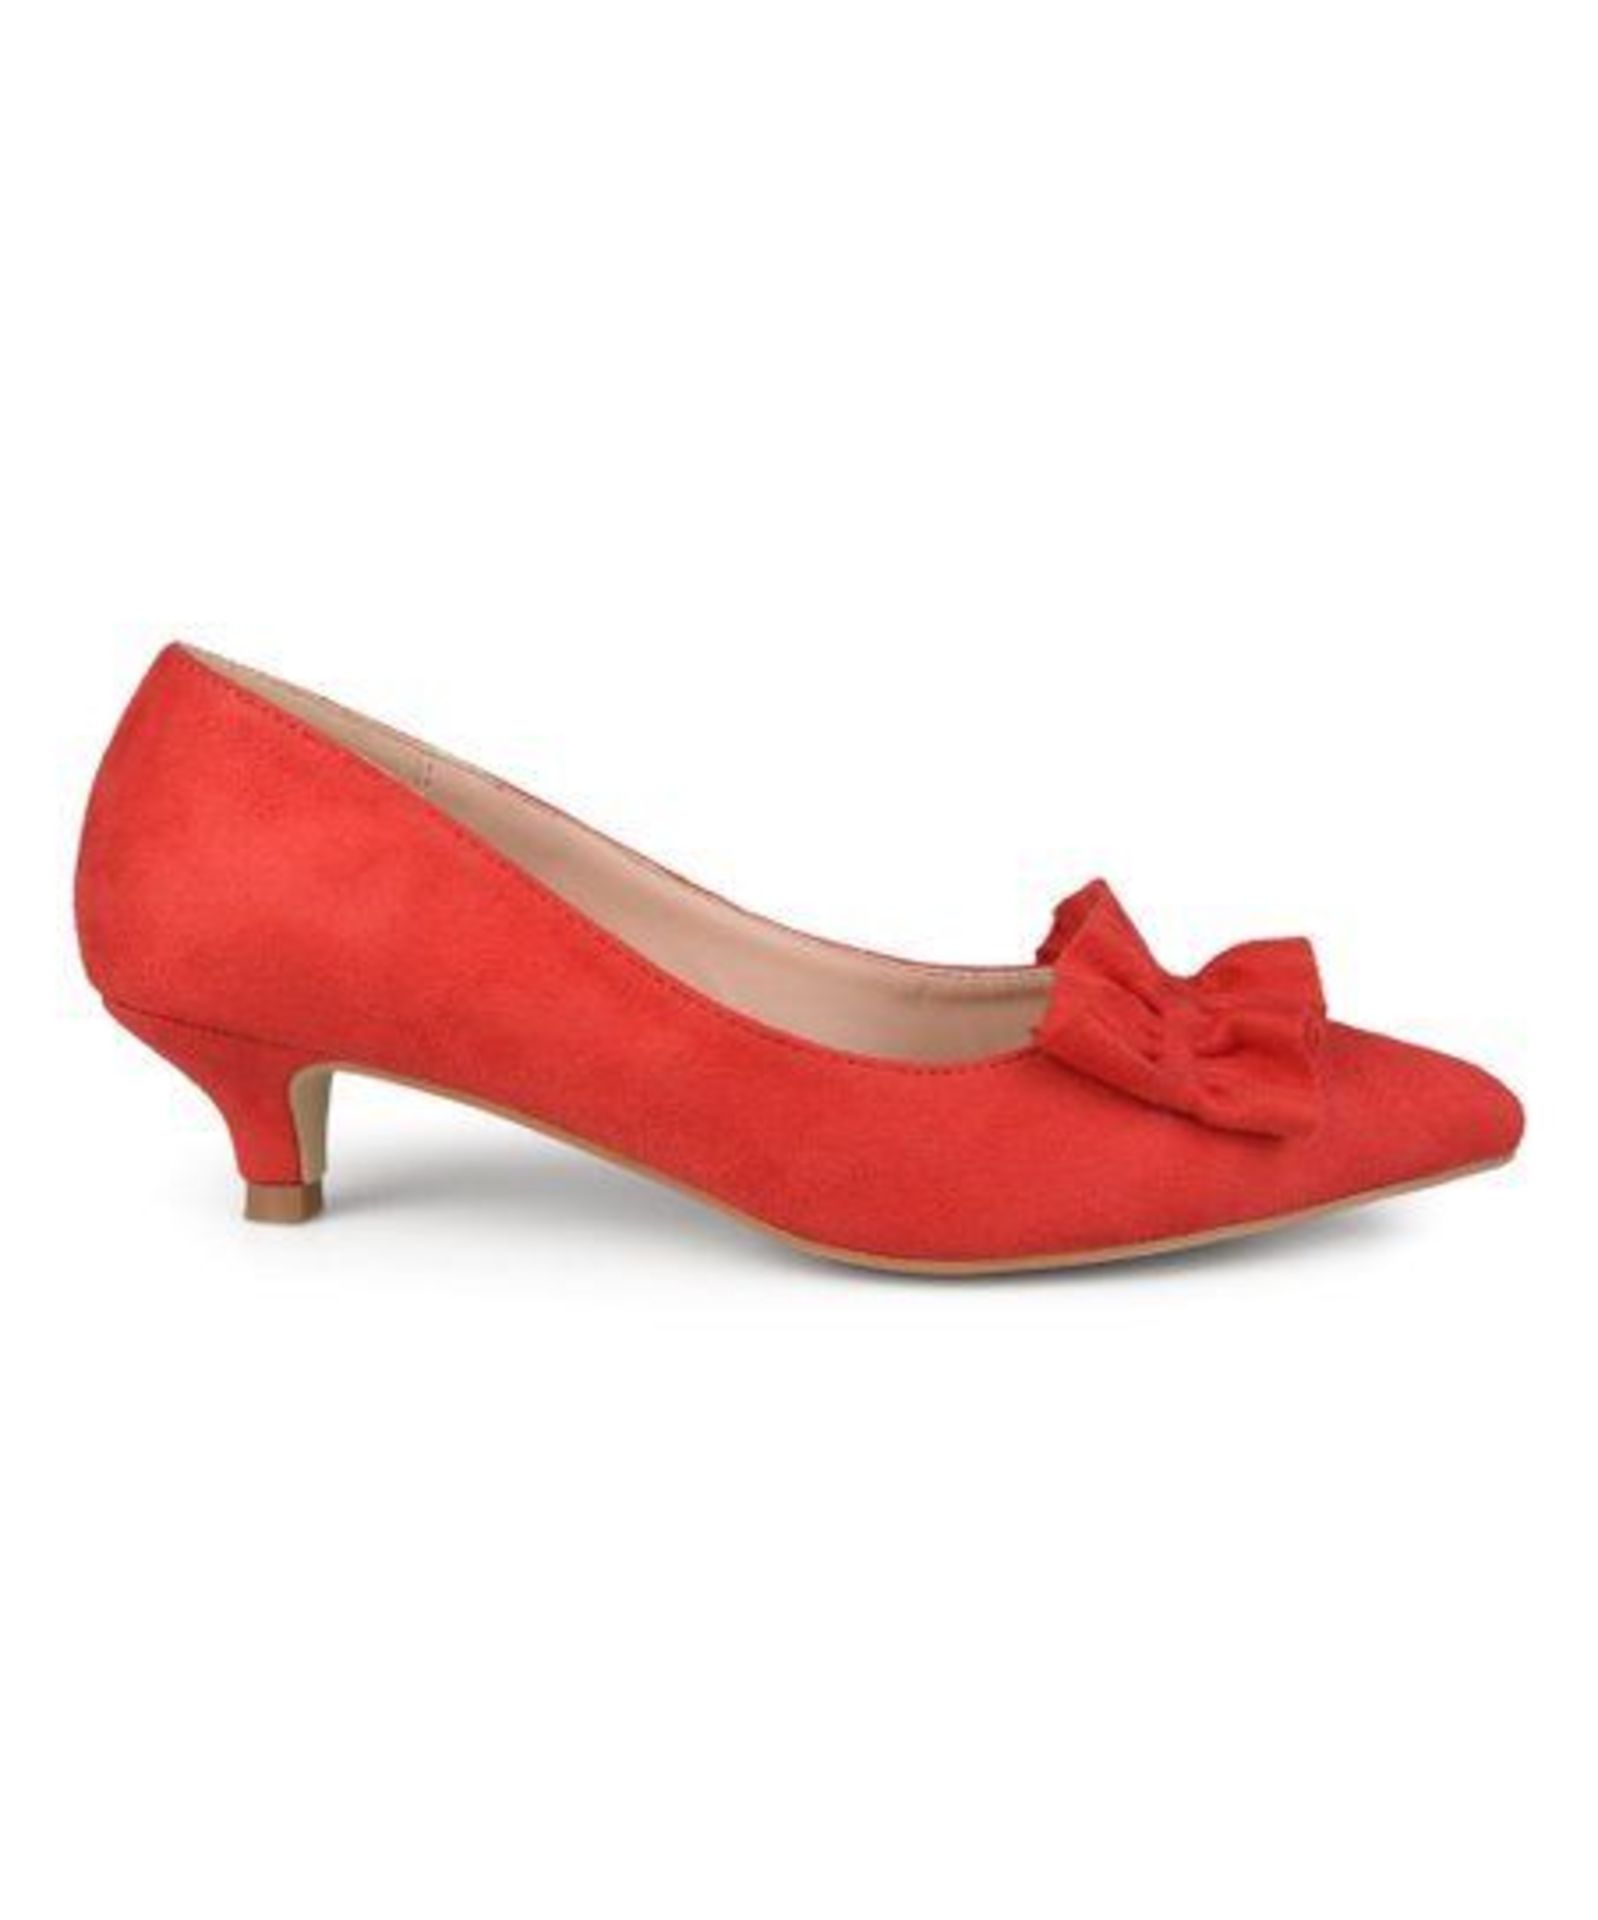 Lot 59 - Bella Cora Red Shira Pump (Uk Size:5.5/Us Size:8) (New With Box) [Ref: 55196208-F-003]